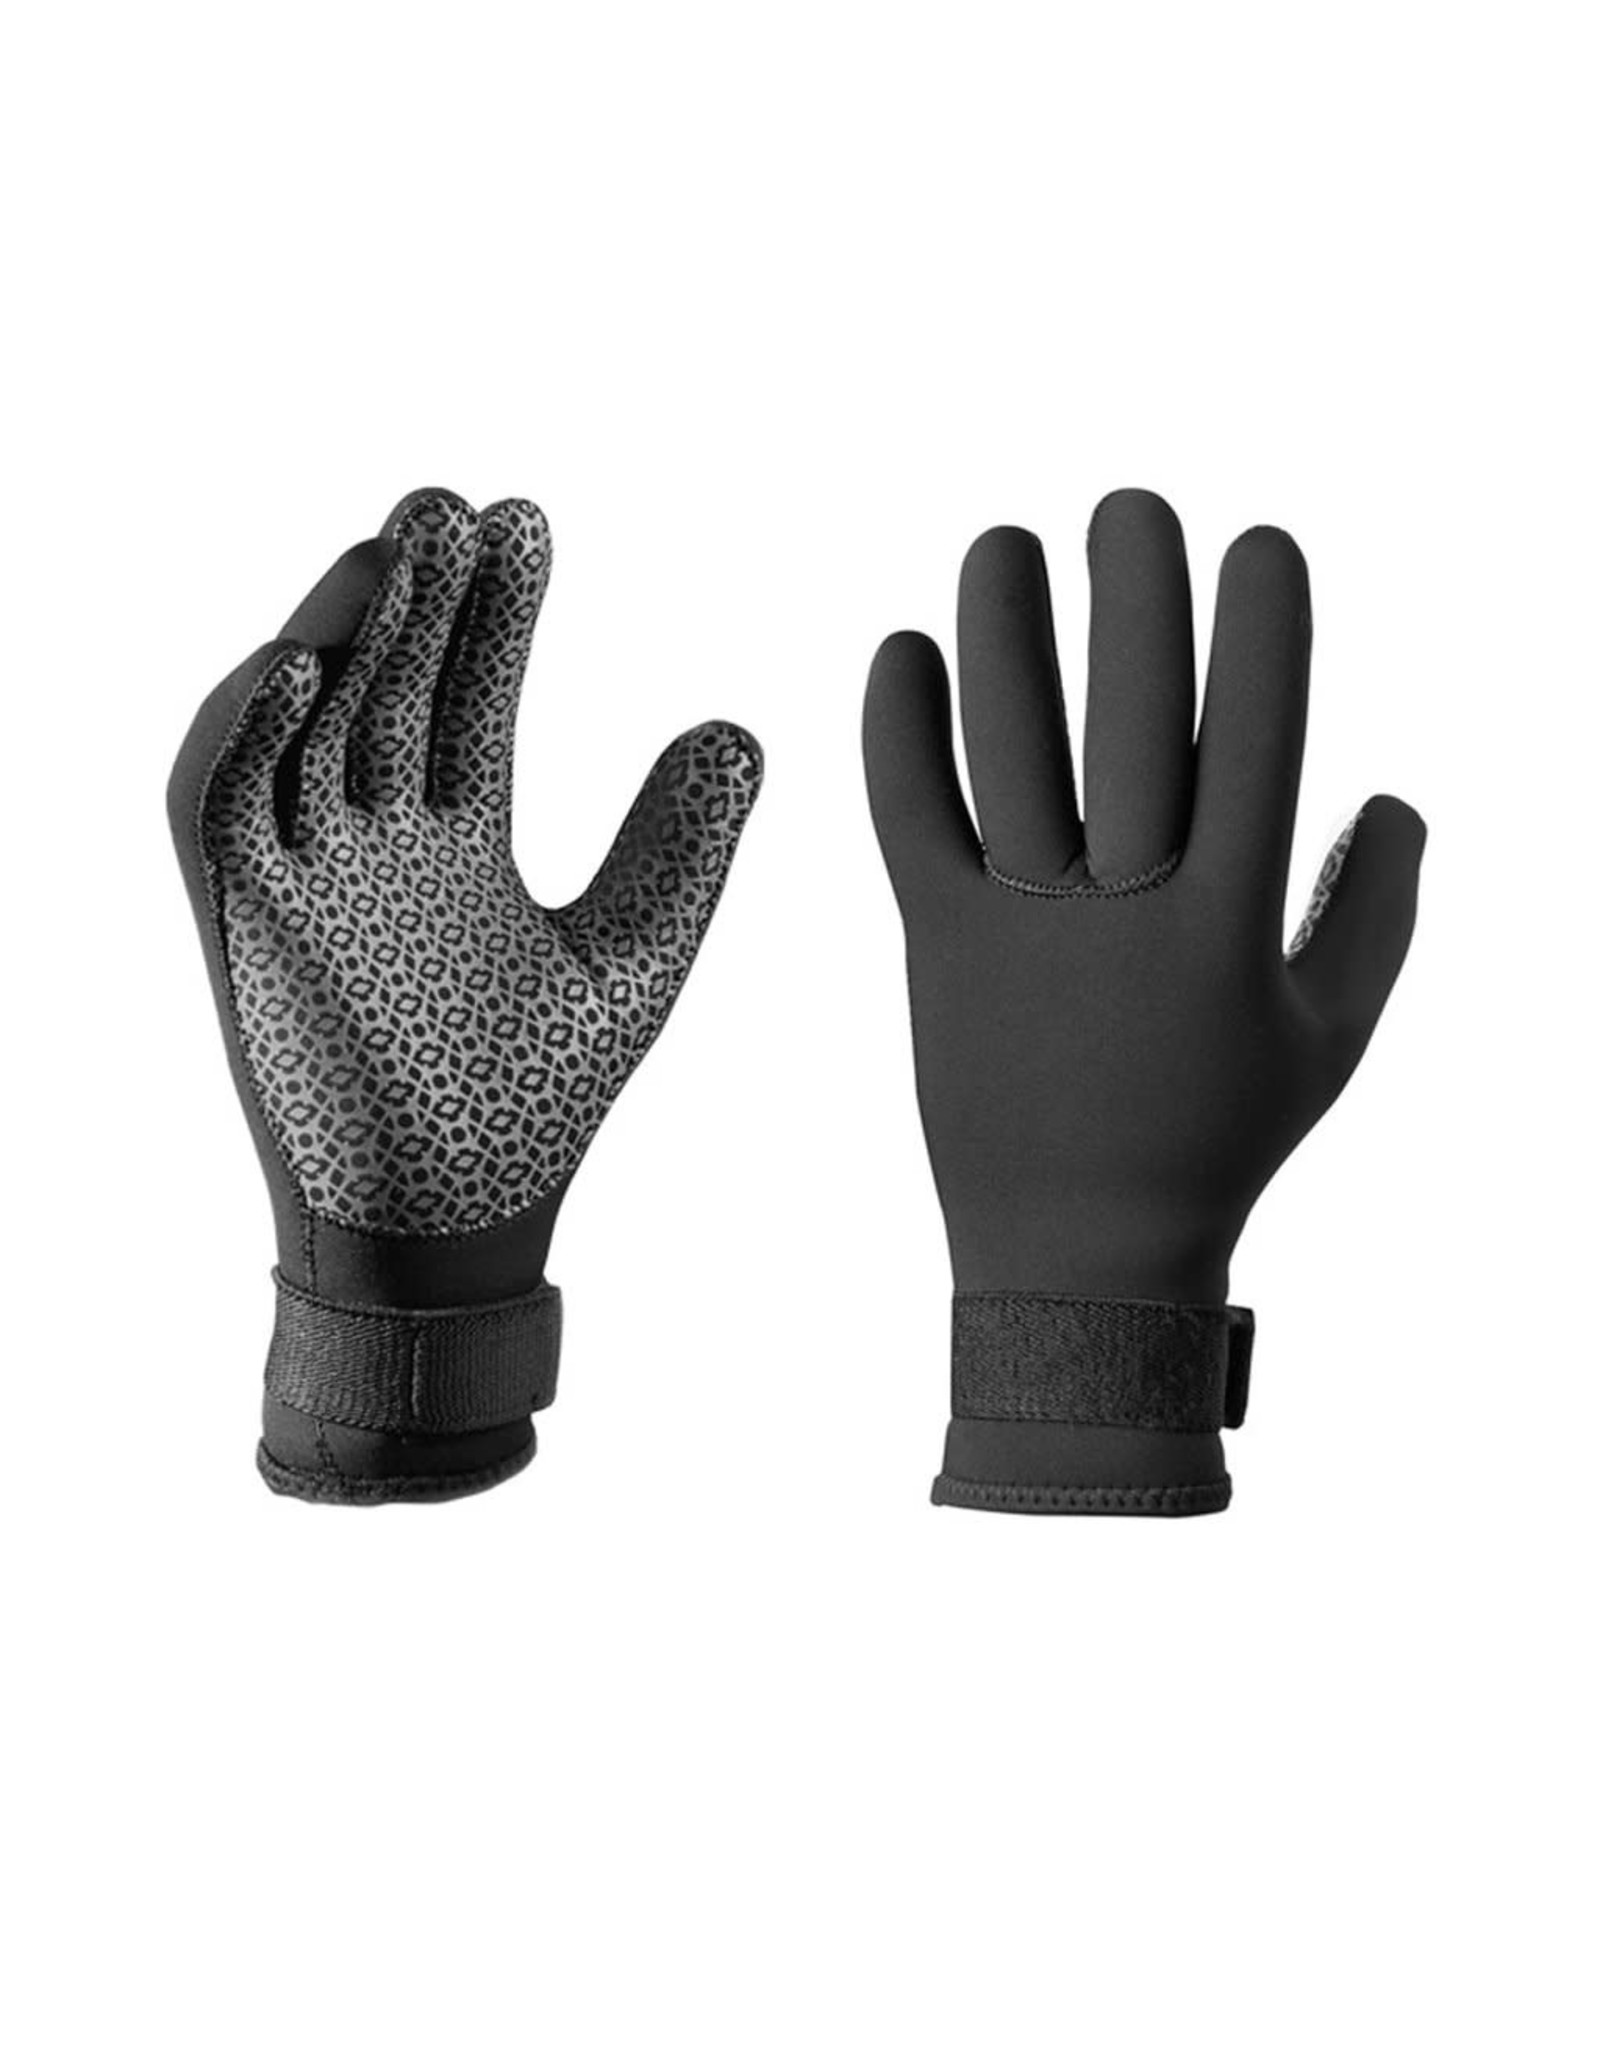 Atlan Atlan 3mm Calorific Gloves